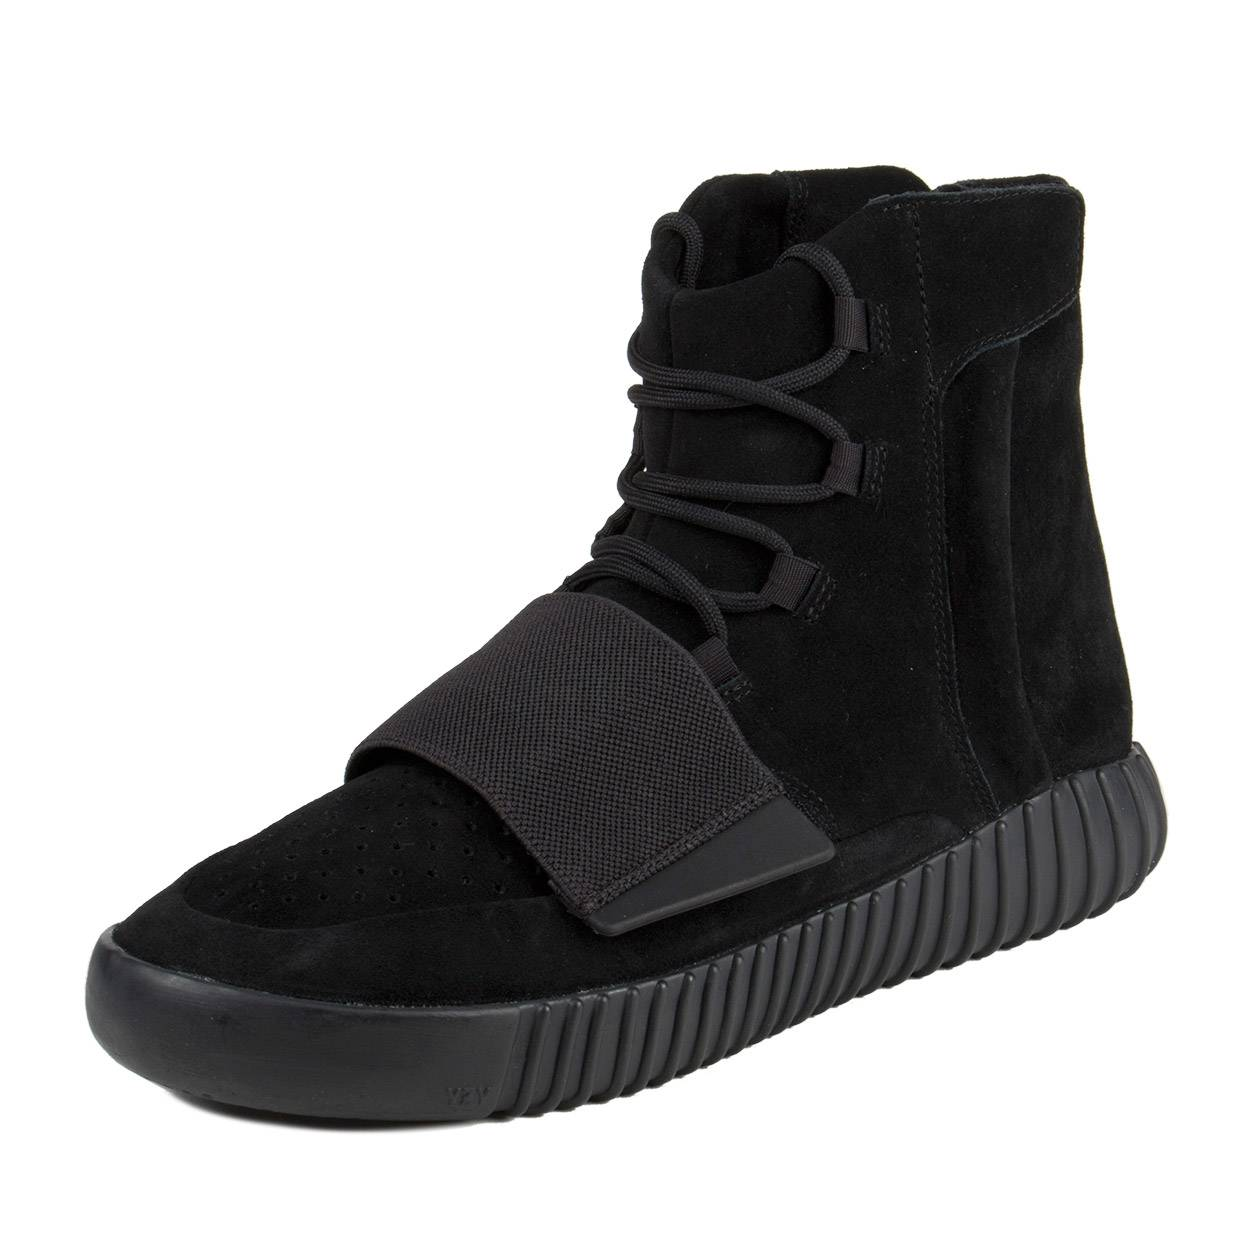 11847d947 ... Black Yeezy Boost 750 Adidas Mens Yeezy Boost 750 ...